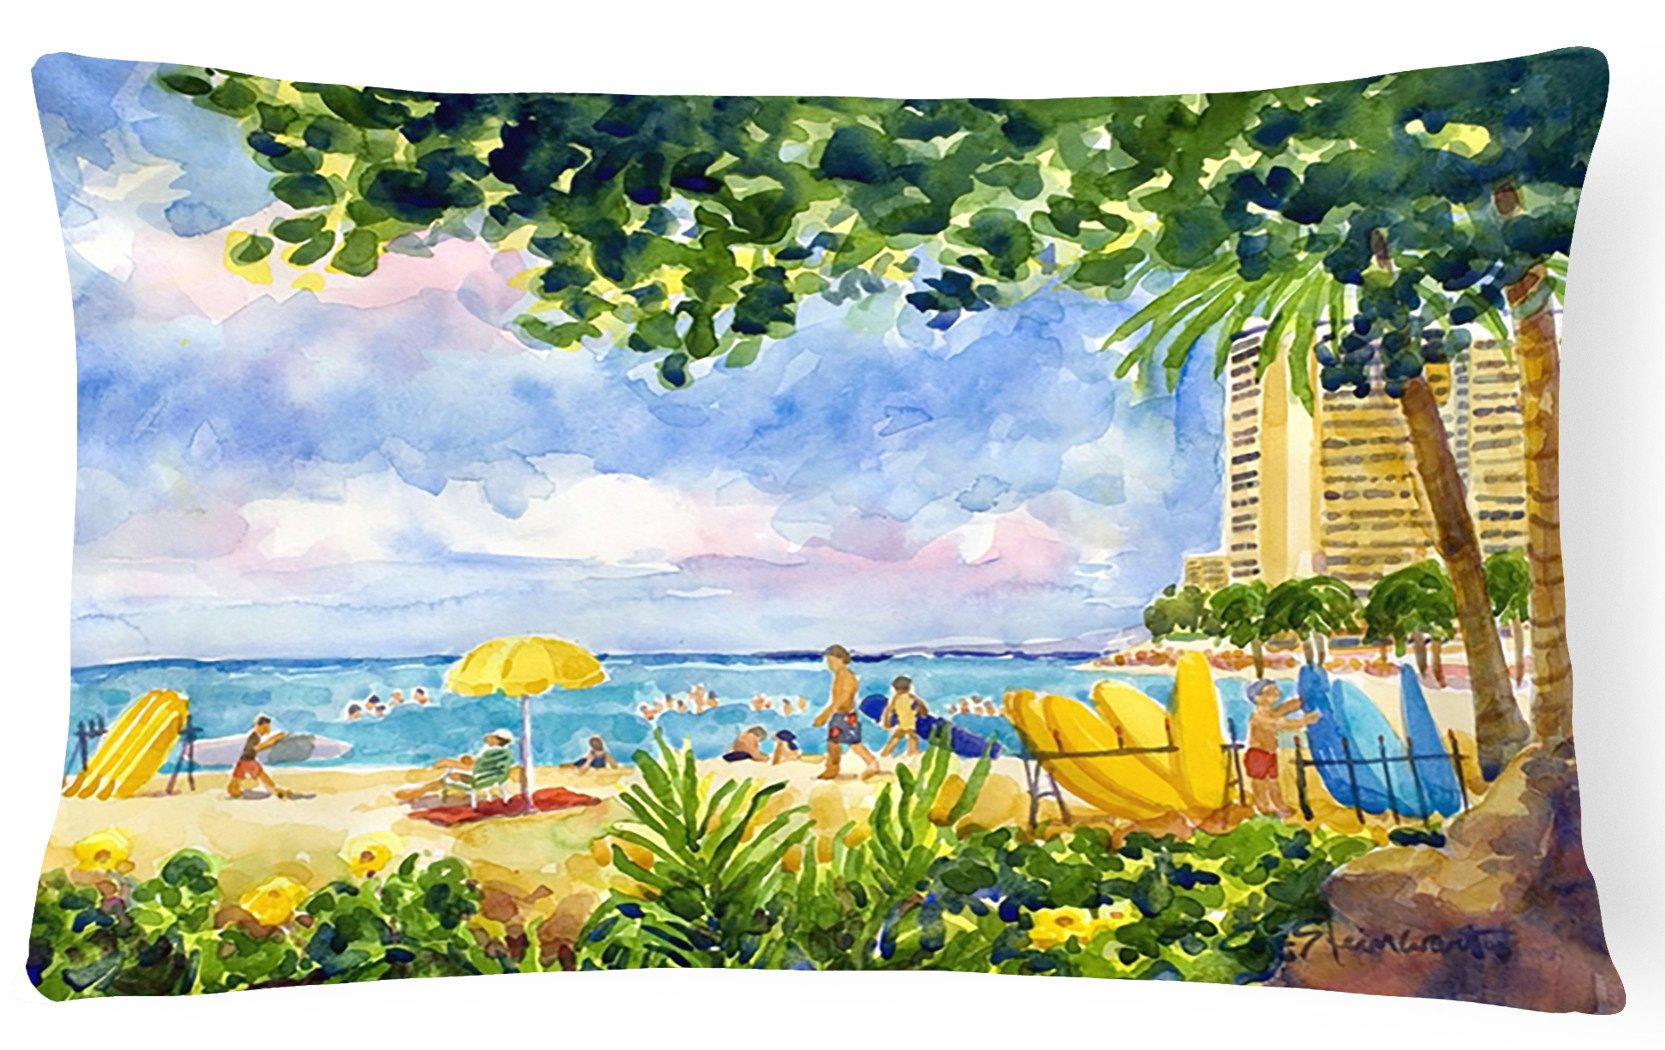 Beach Resort view from the condo  Decorative   Canvas Fabric Pillow - the-store.com